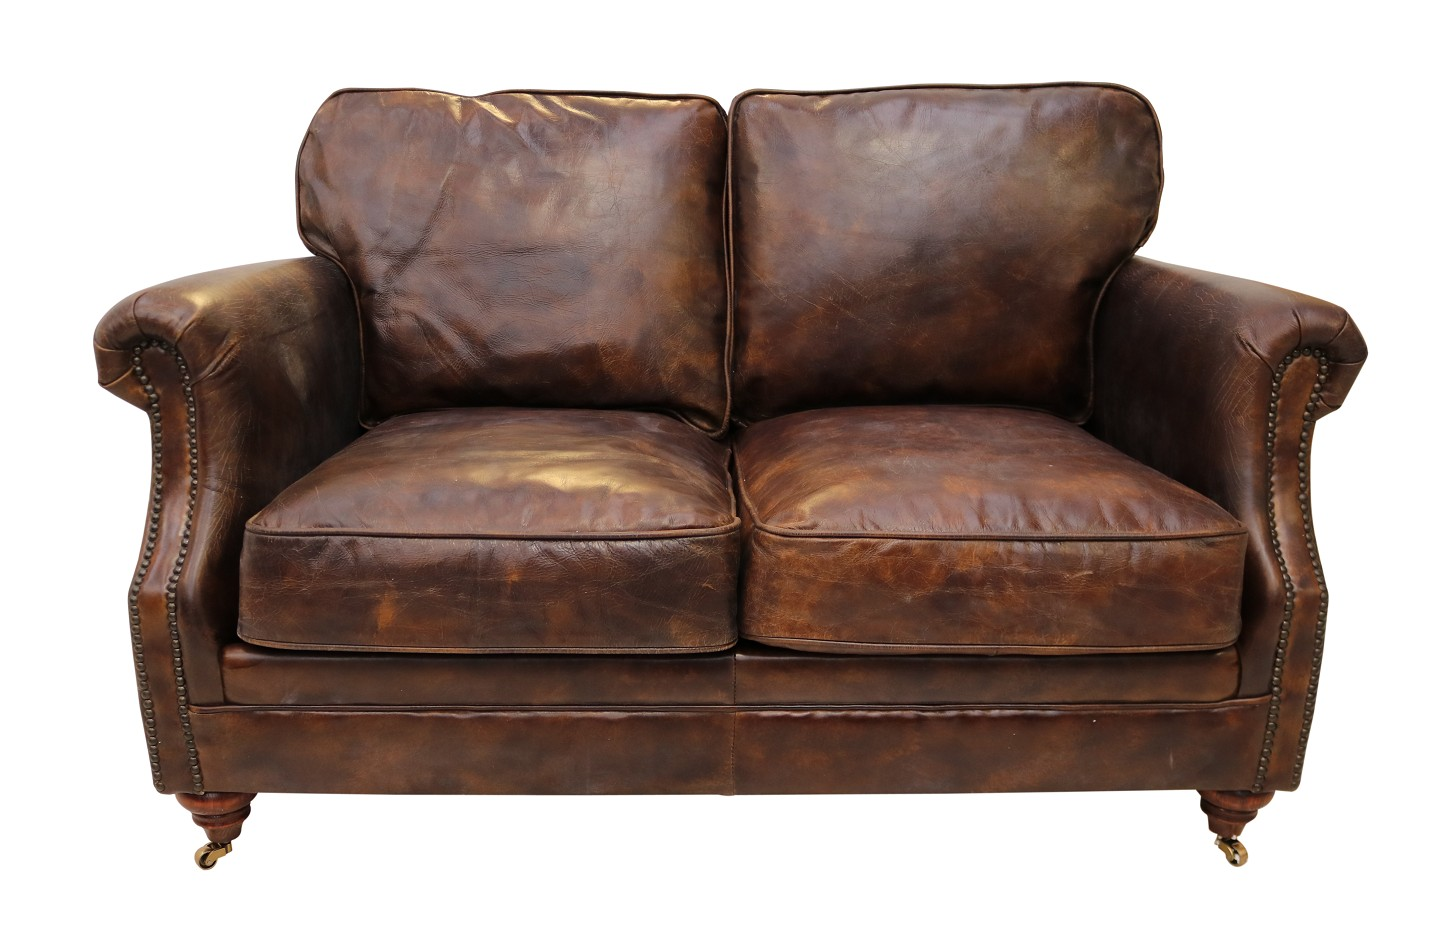 Picture of: Luxury Vintage Distressed Leather 2 Seater Settee Sofa Tobacco Brown Vintage Furniture By Designer Sofas For You